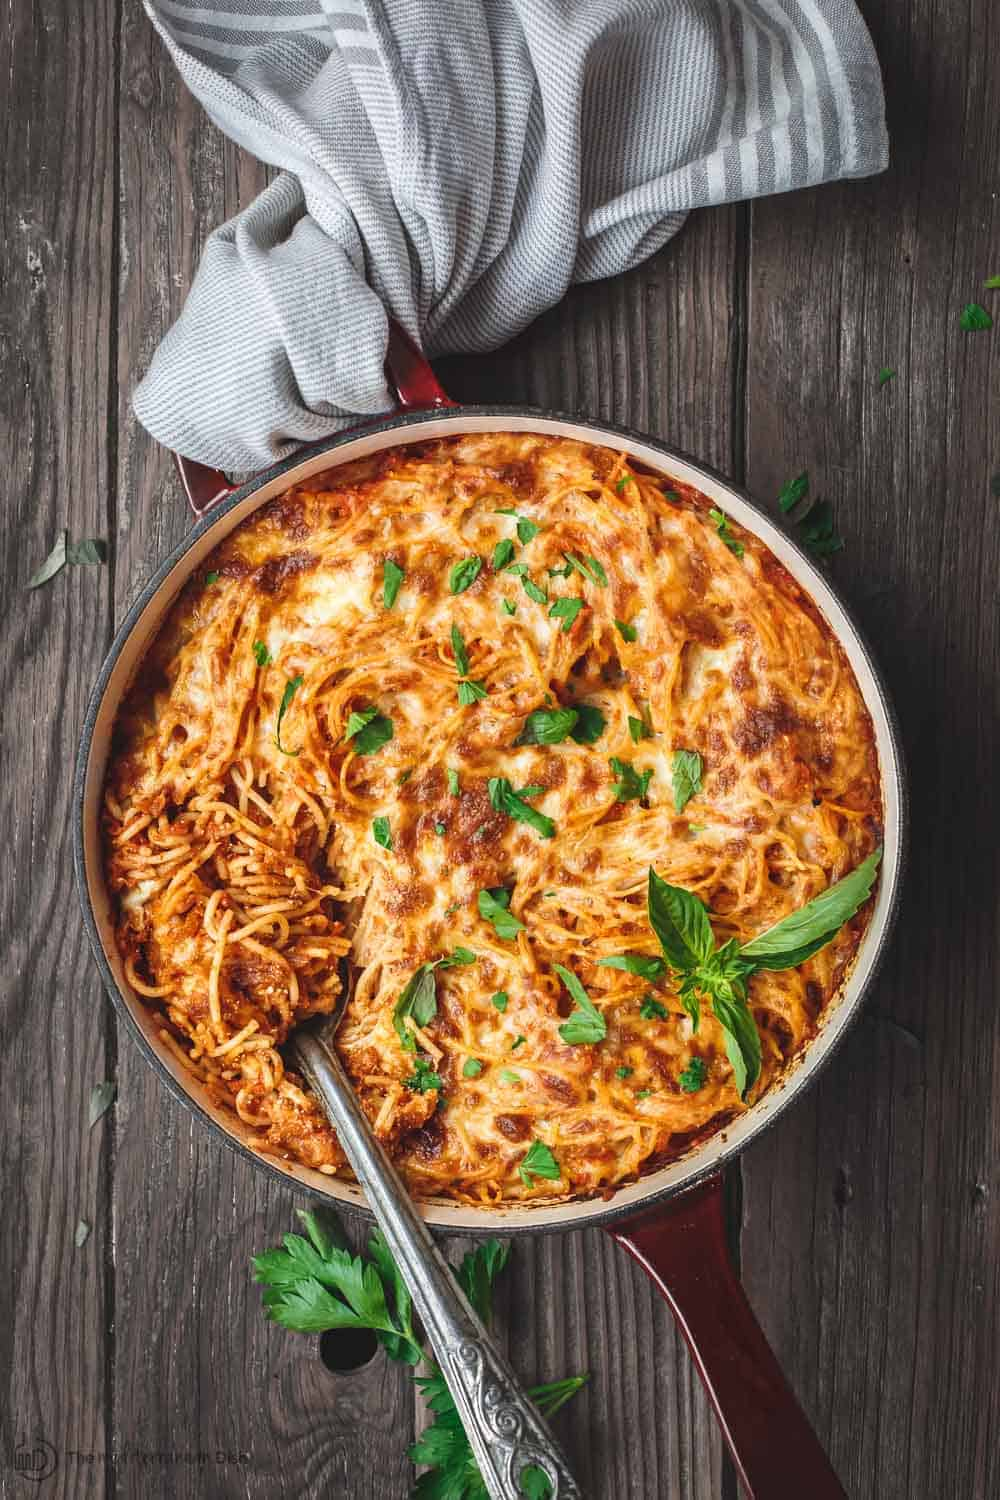 Hearty baked spaghetti in a casserole dish ready to be served.